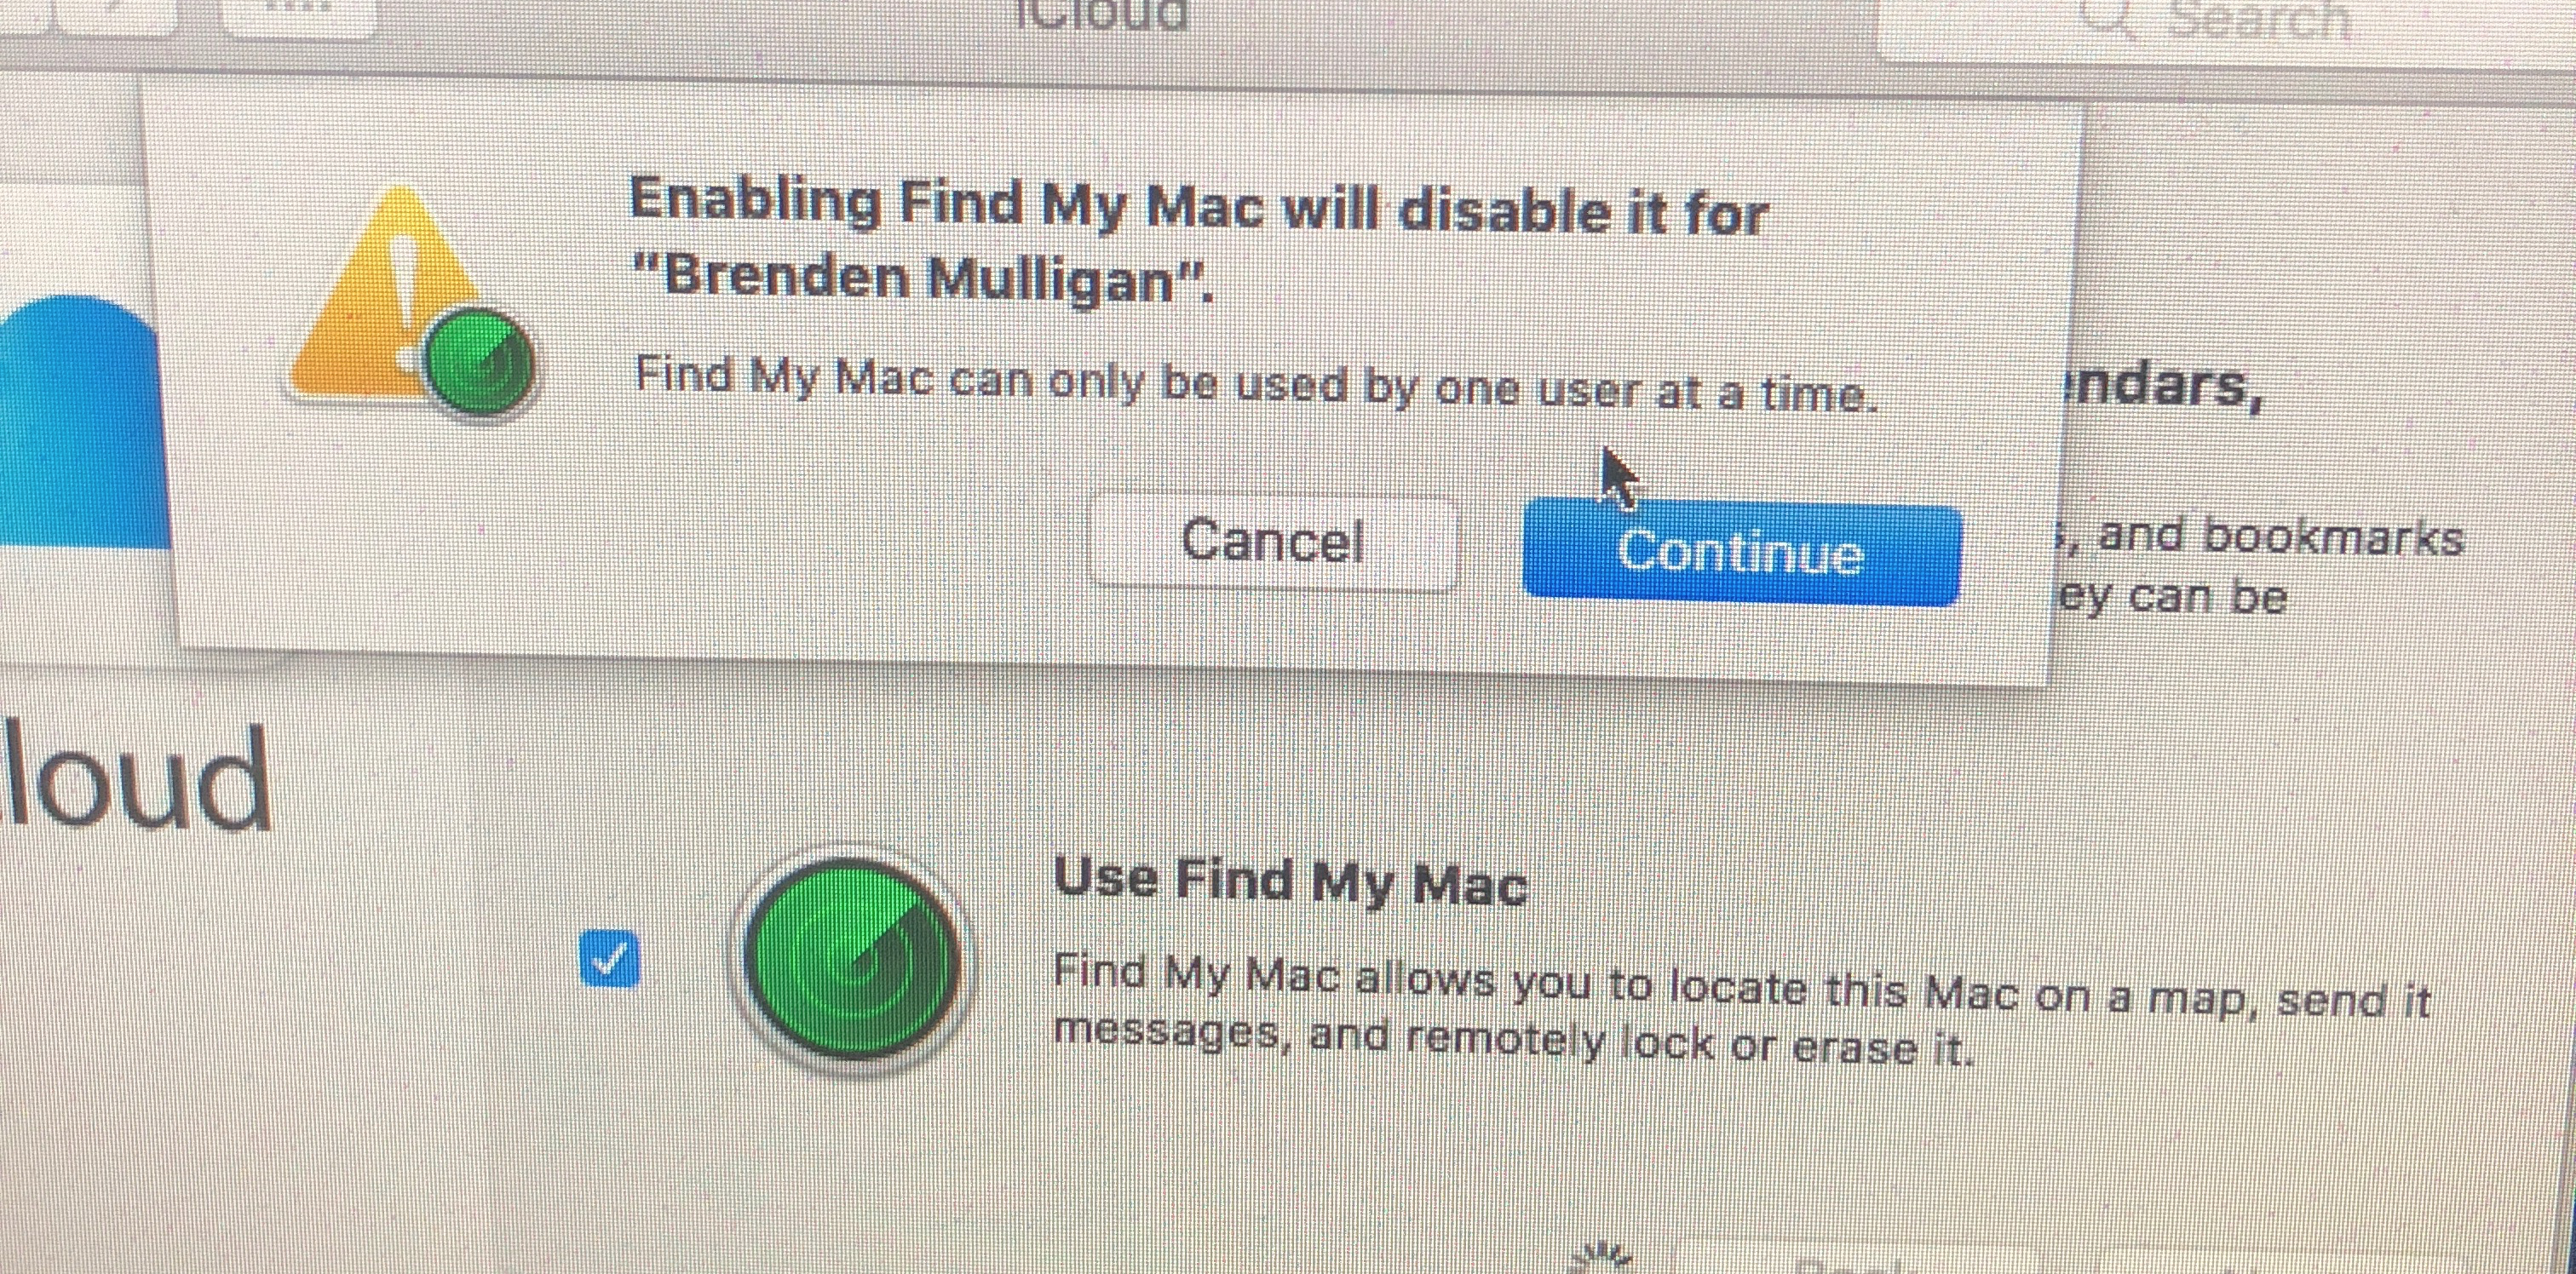 How I sold an old Mac and unknowingly had access to its